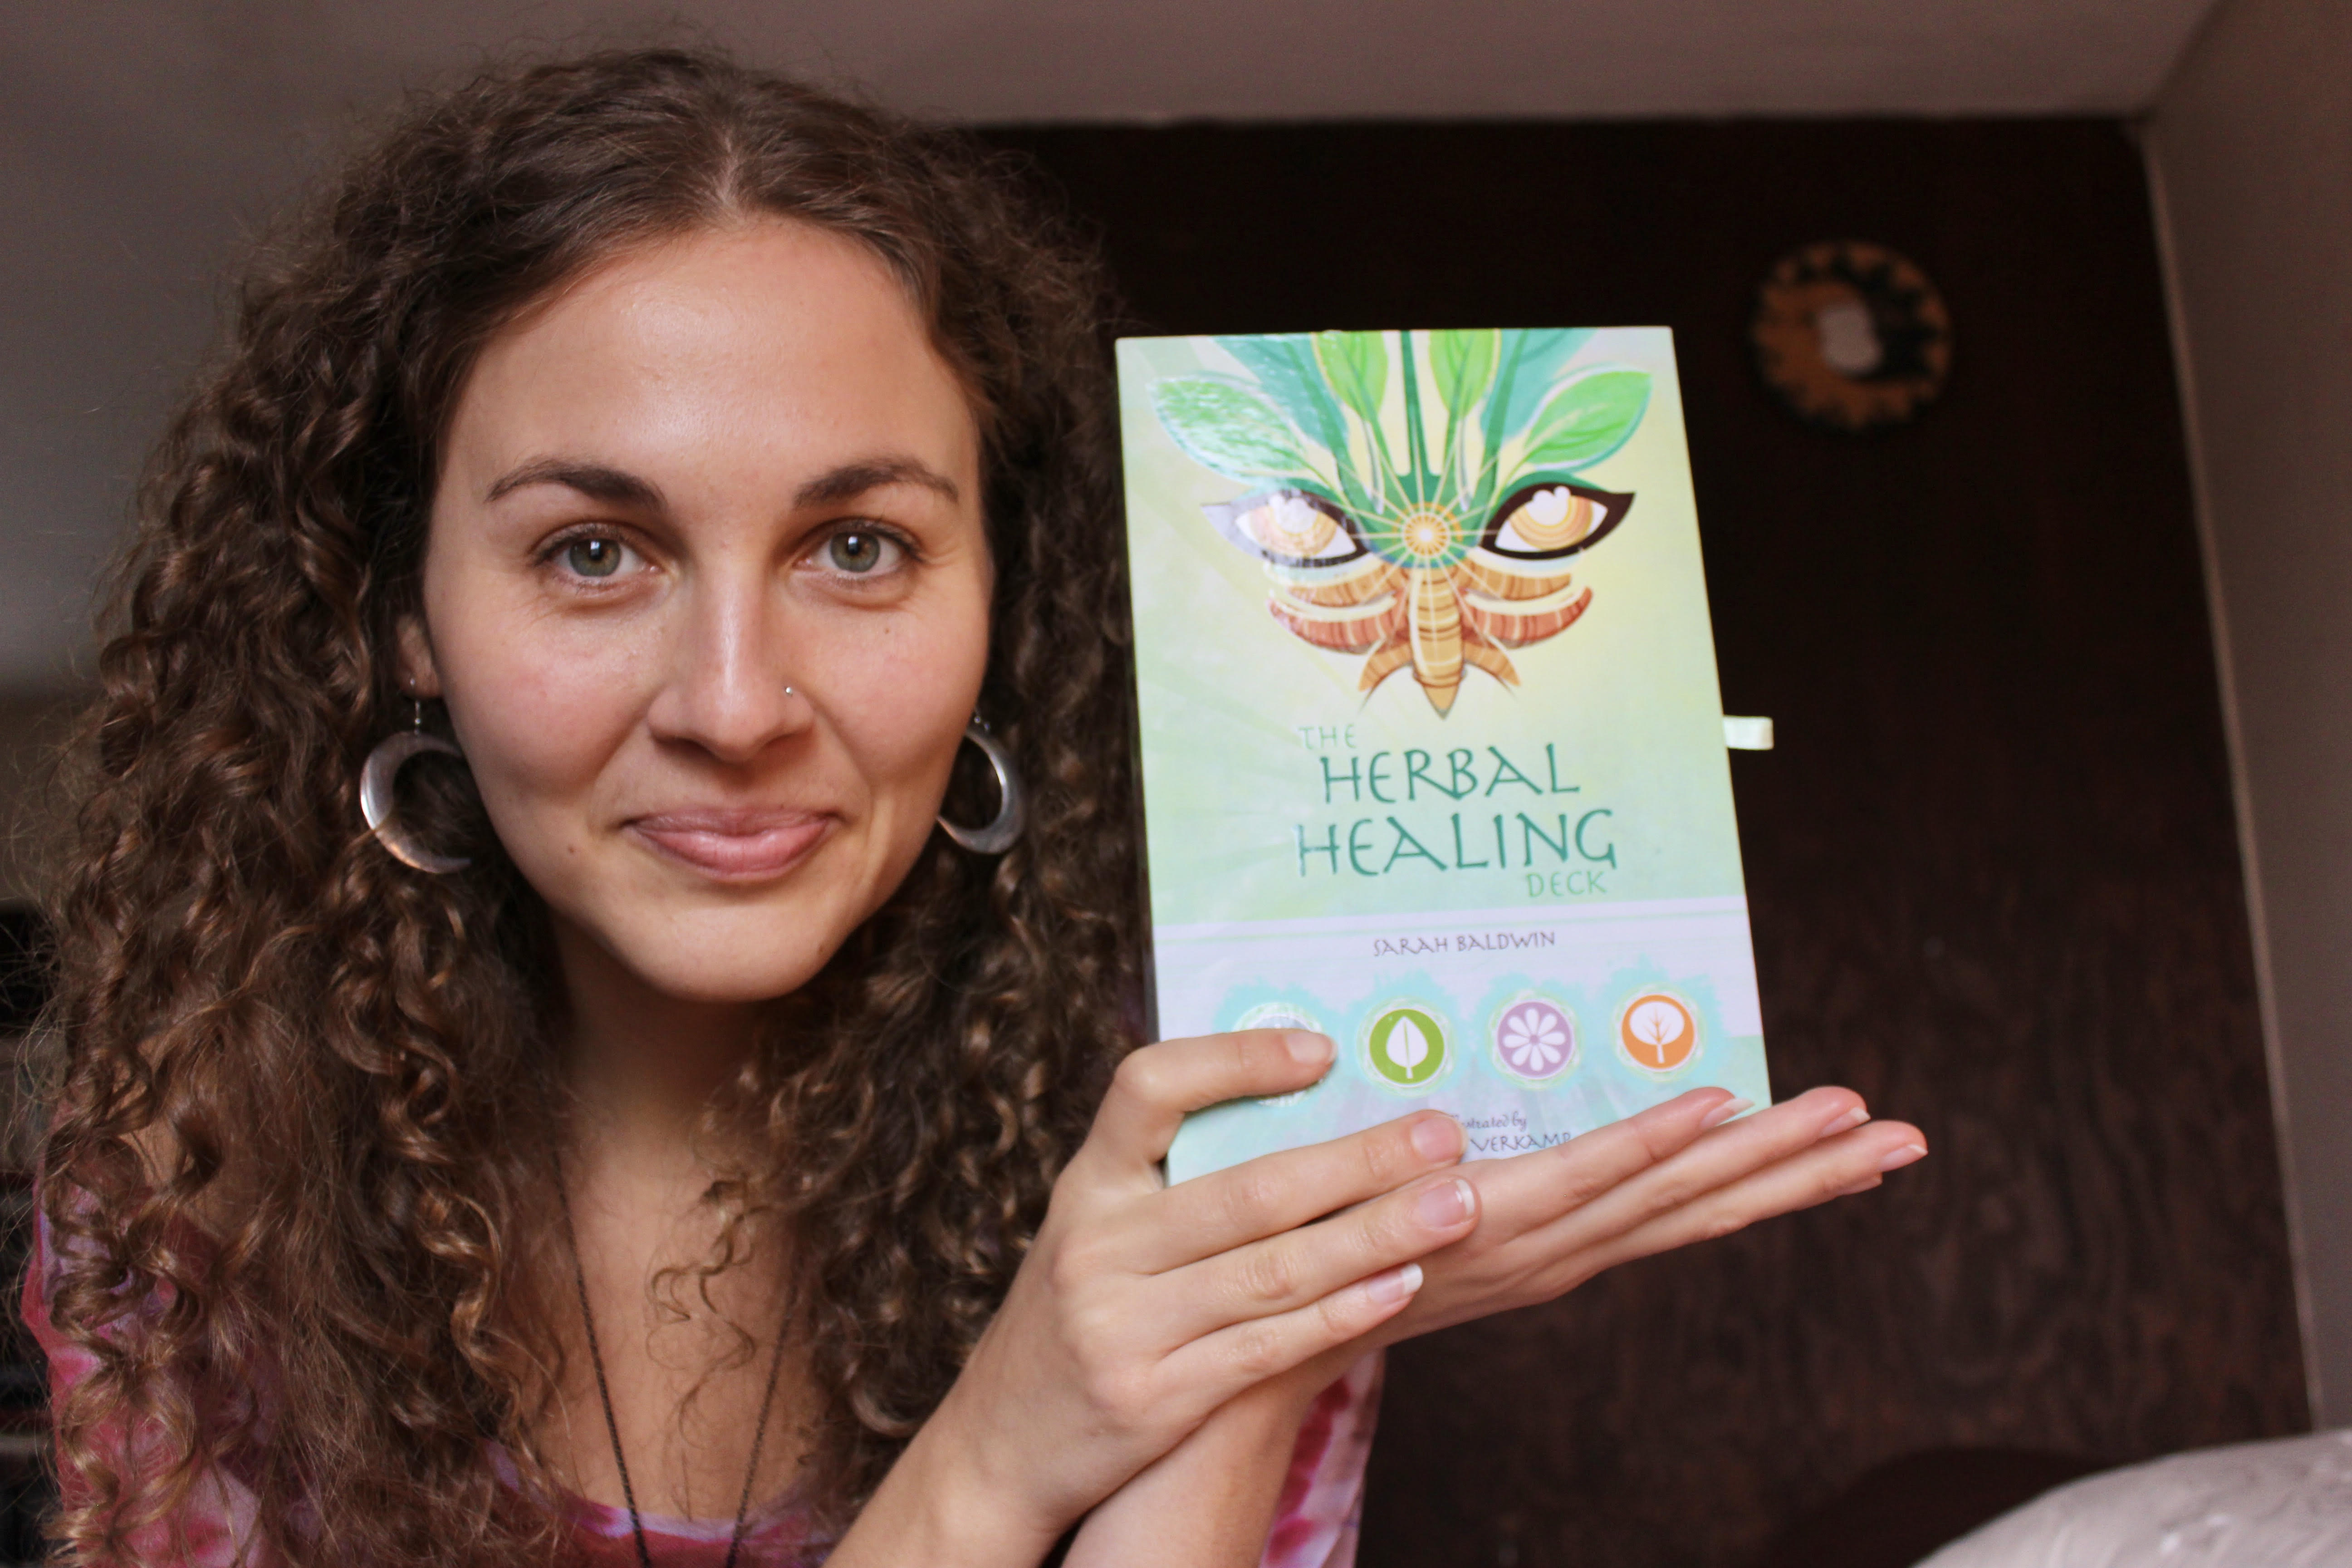 Author of The Herbal Healing Deck and editor at The Herbal Academy